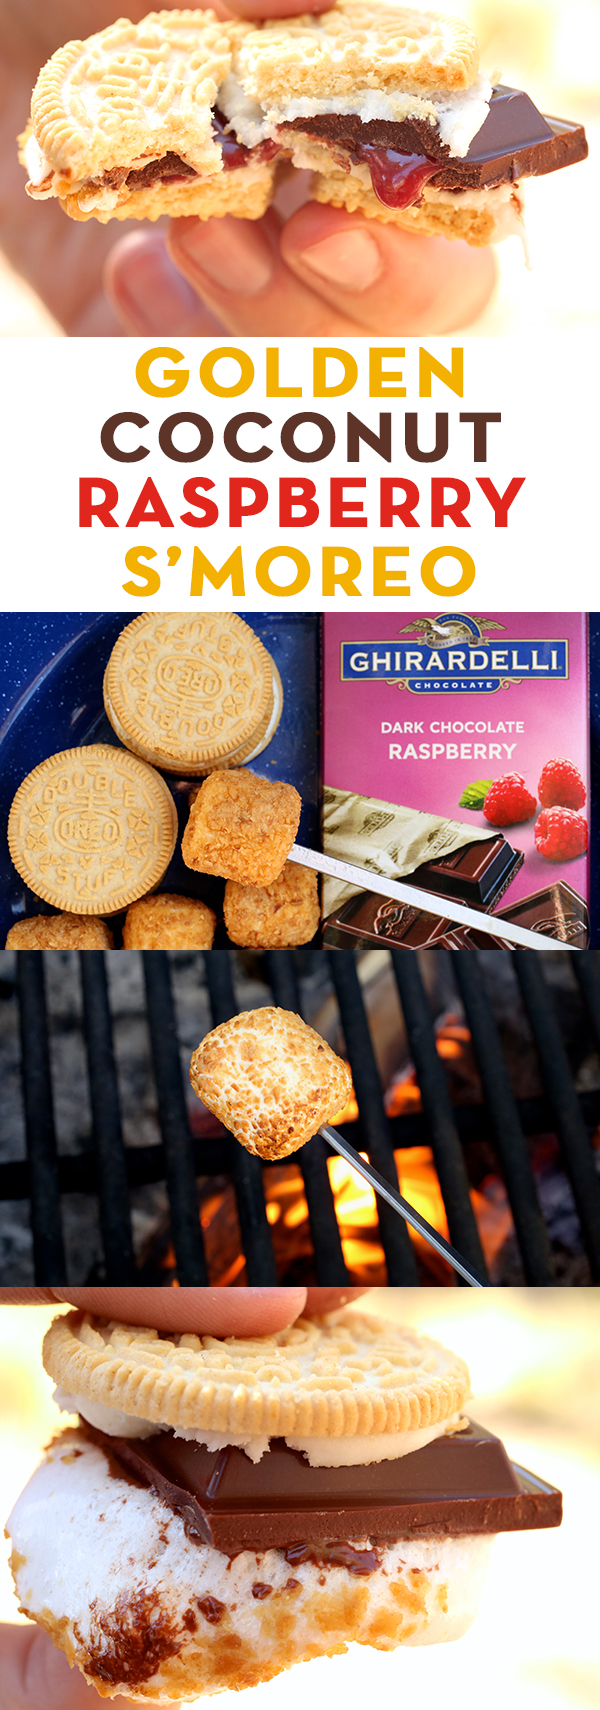 Golden Coconut Raspberry S'moreo Recipe